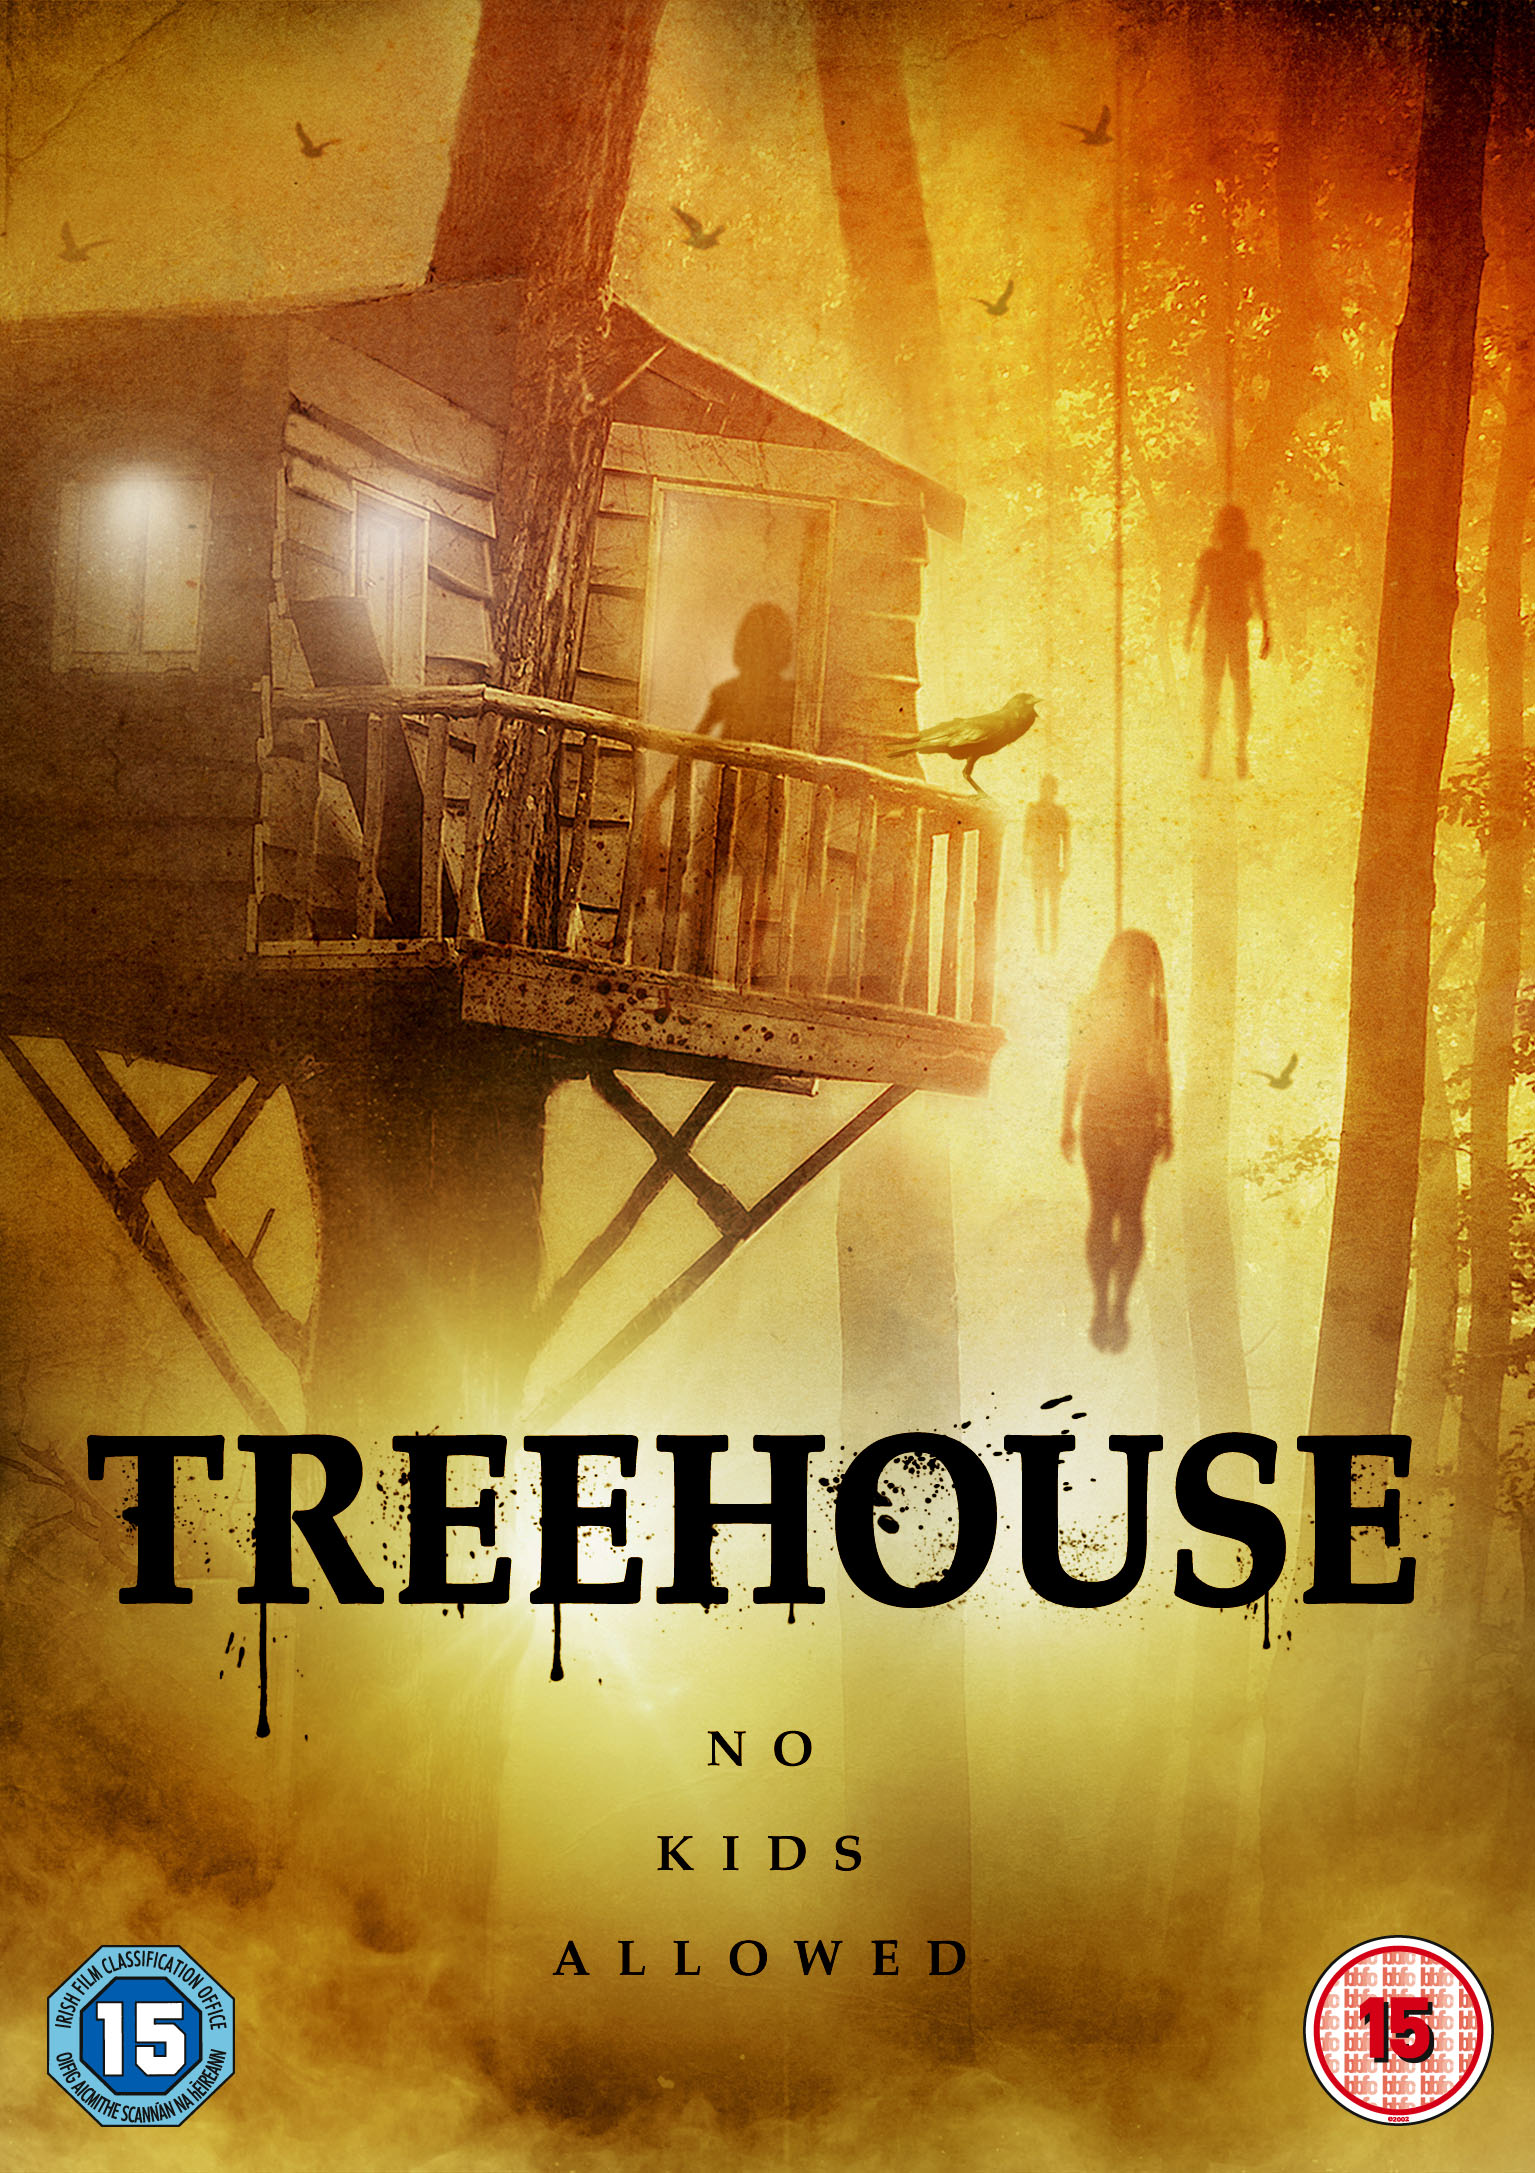 Treehouse 2014 Dvd Planet Store